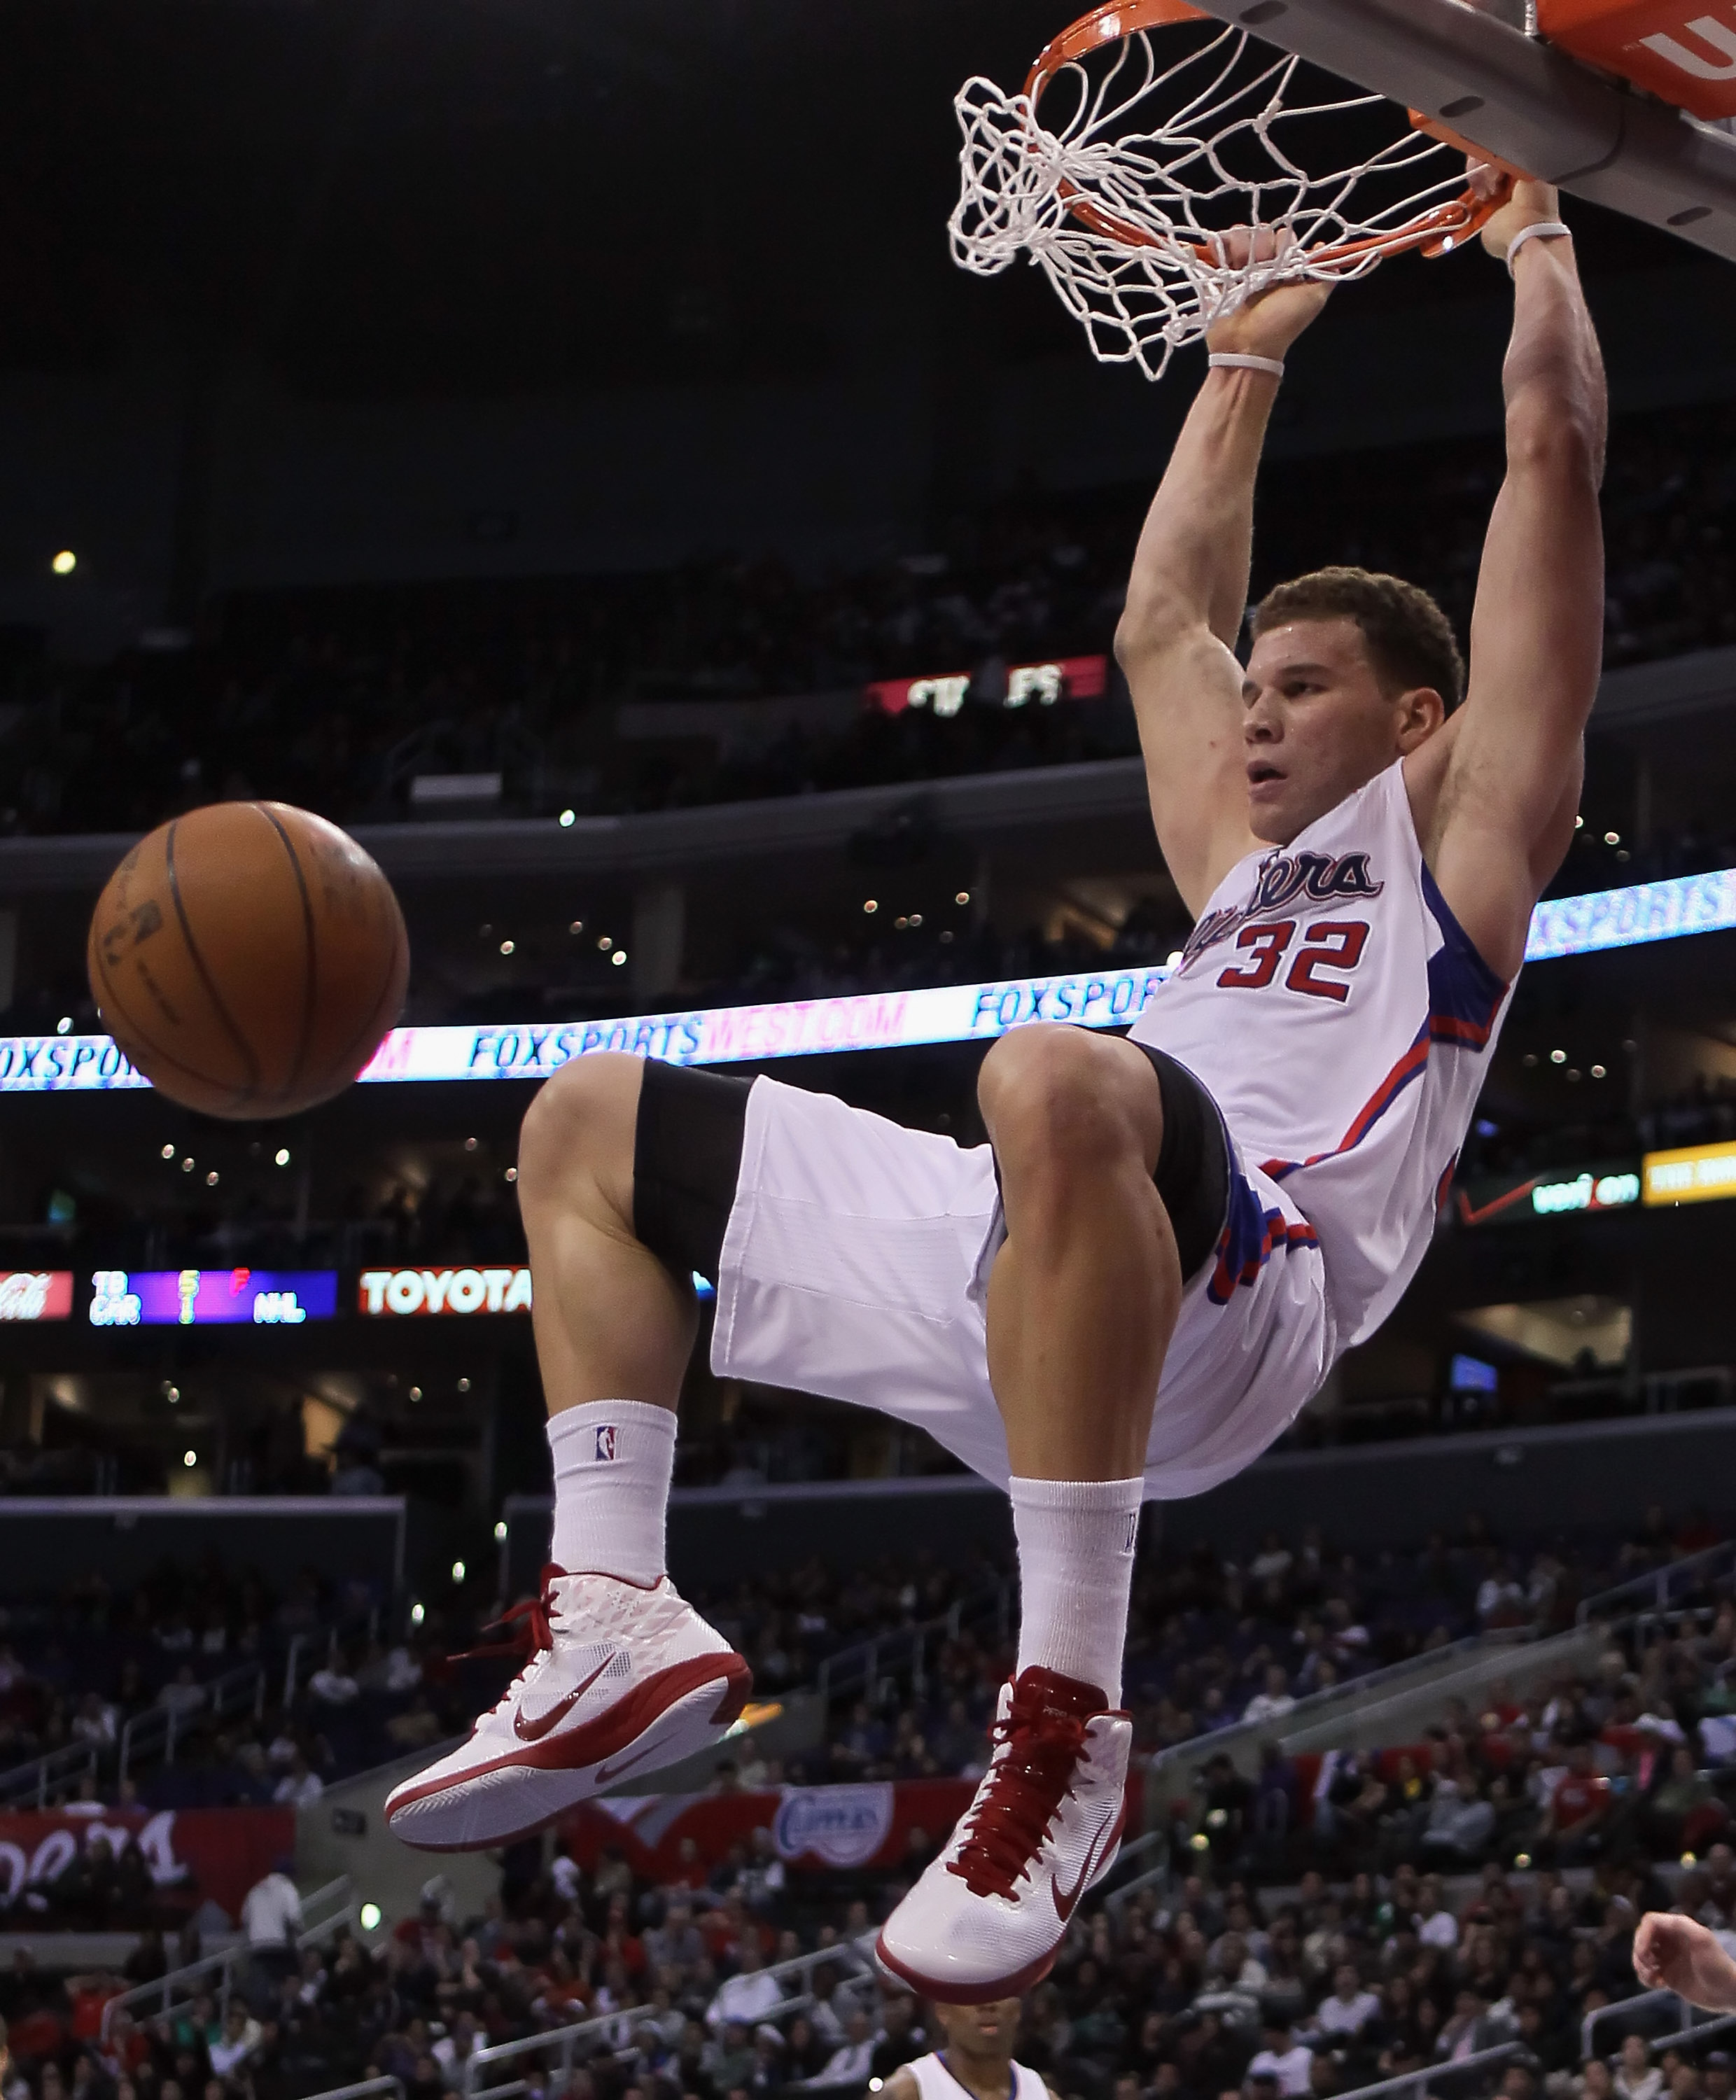 LOS ANGELES, CA - DECEMBER 20:  Blake Griffin #32 of the Los Angeles Clippers goes up for a dunk during the second half against the Minnesota Timberwolves at Staples Center on December 20, 2010 in Los Angeles, California. The Clippers defeated the Timberw